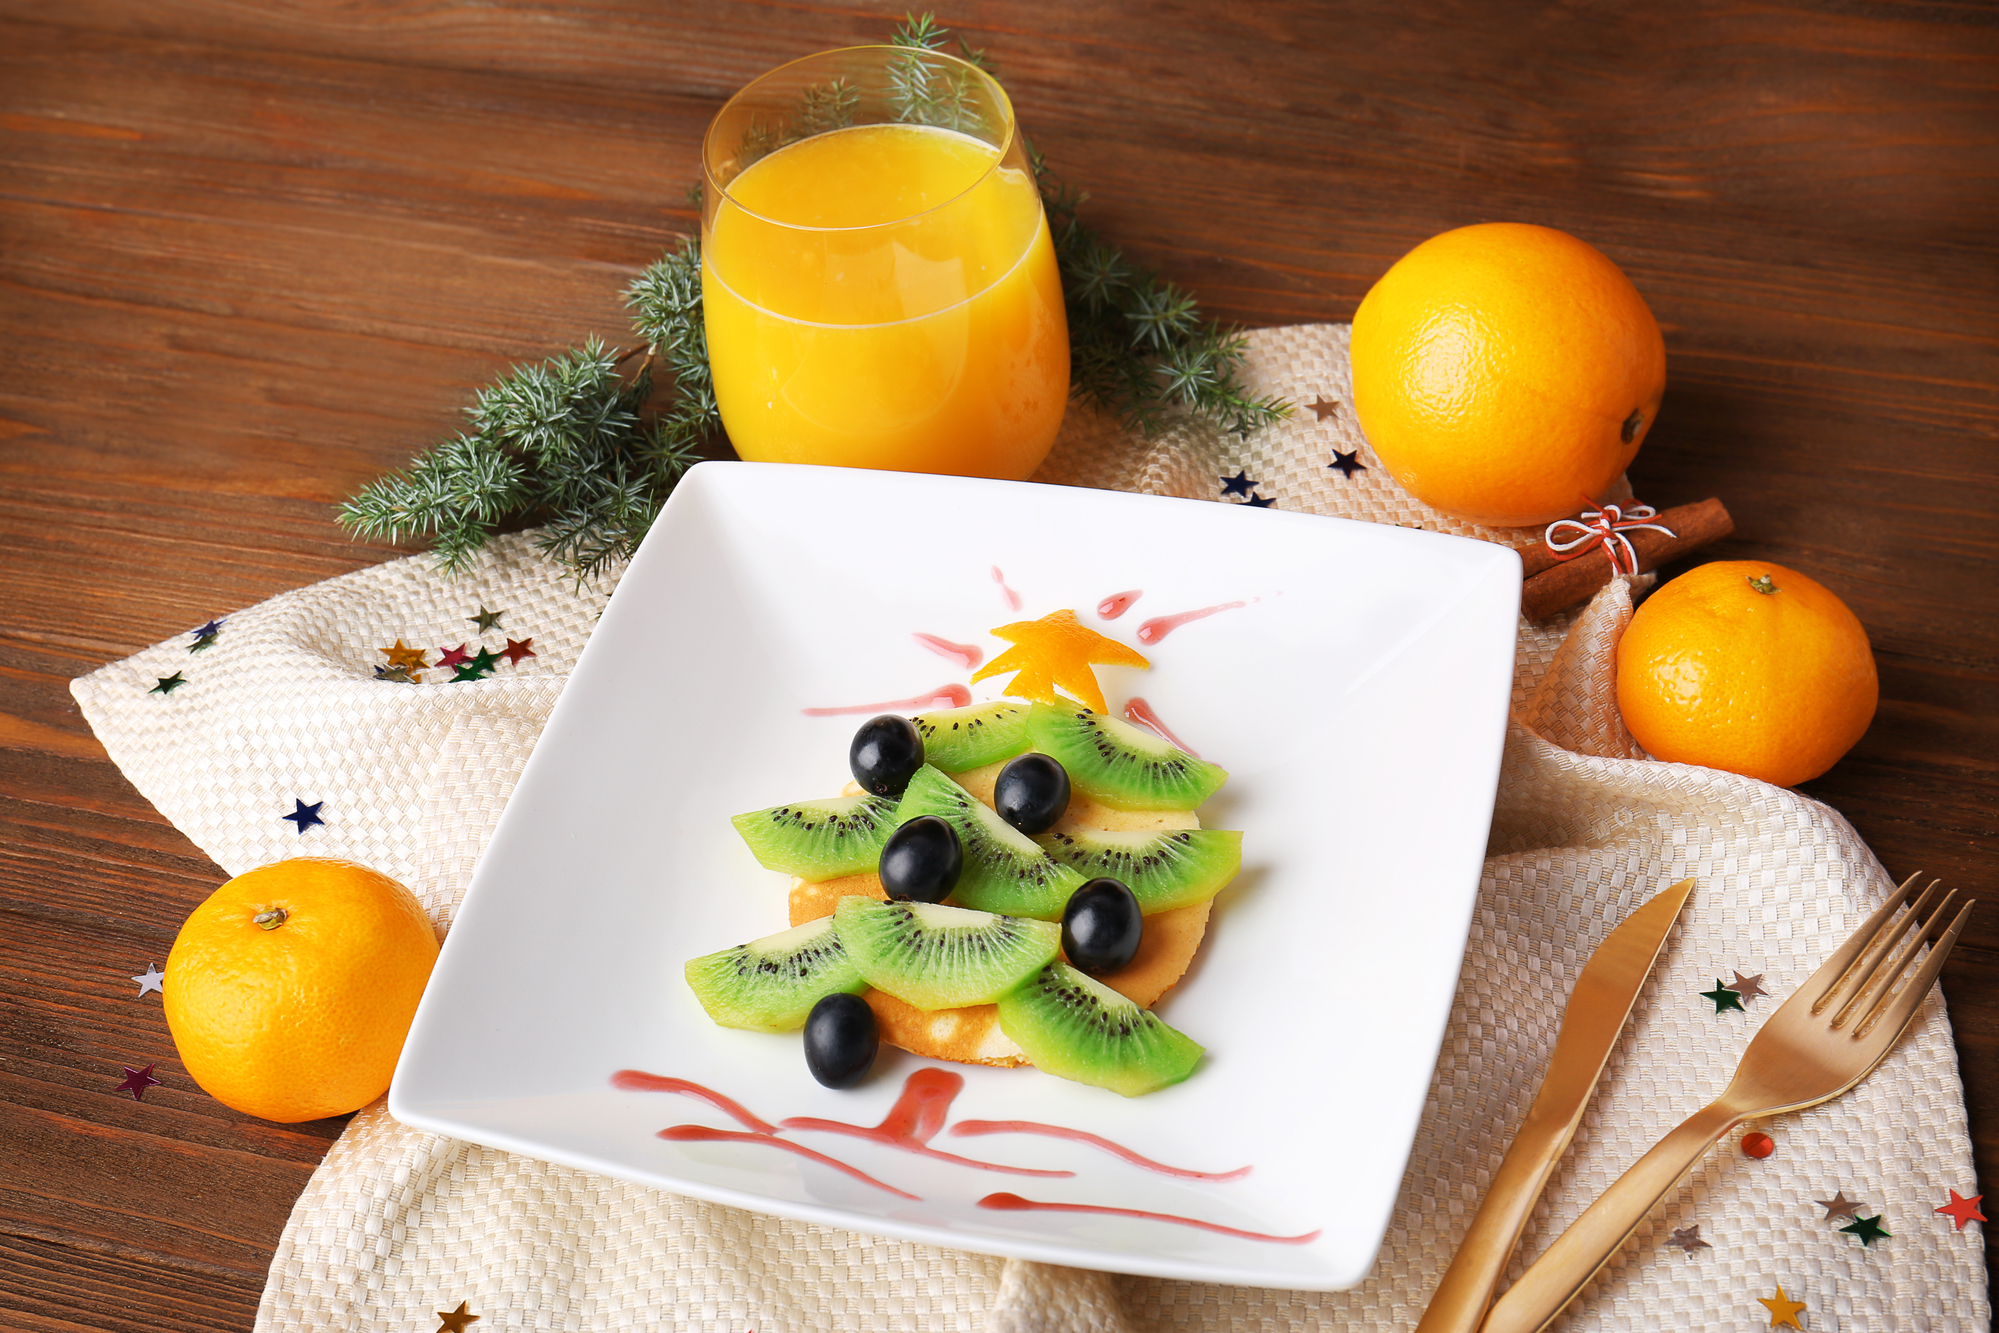 Christmas food idea for kids breakfast, on wooden background kiwi christmas tree food art